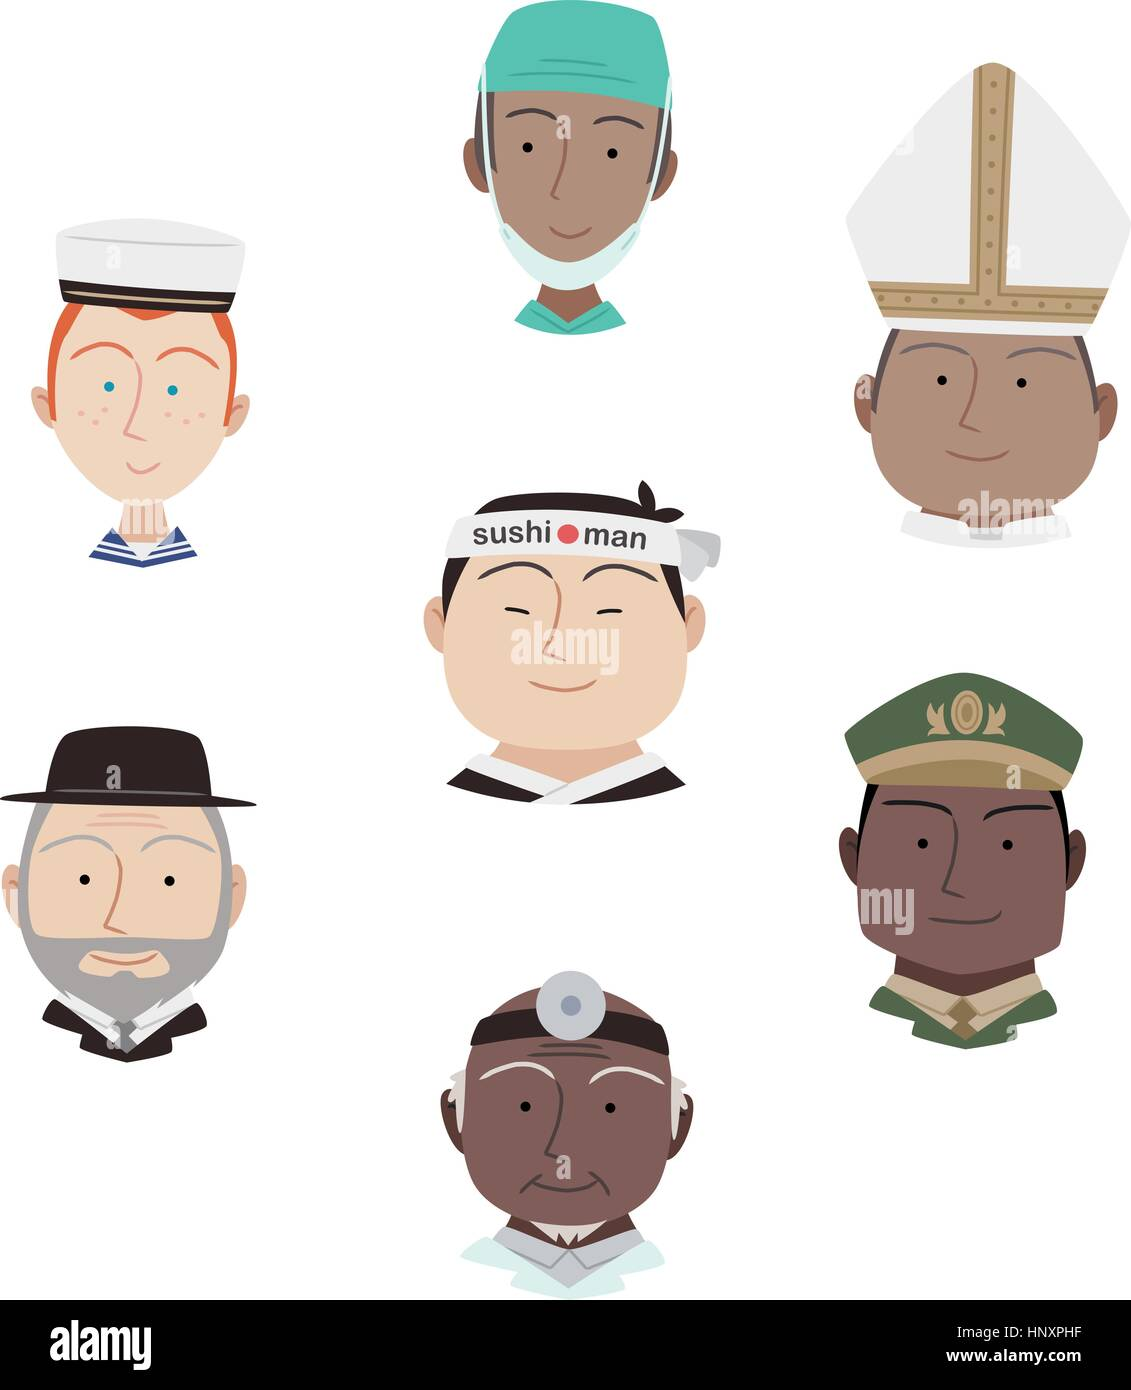 Head and Shoulder Professional people Avatar Profile Characters Cartoon Vectors Illustration. - Stock Vector